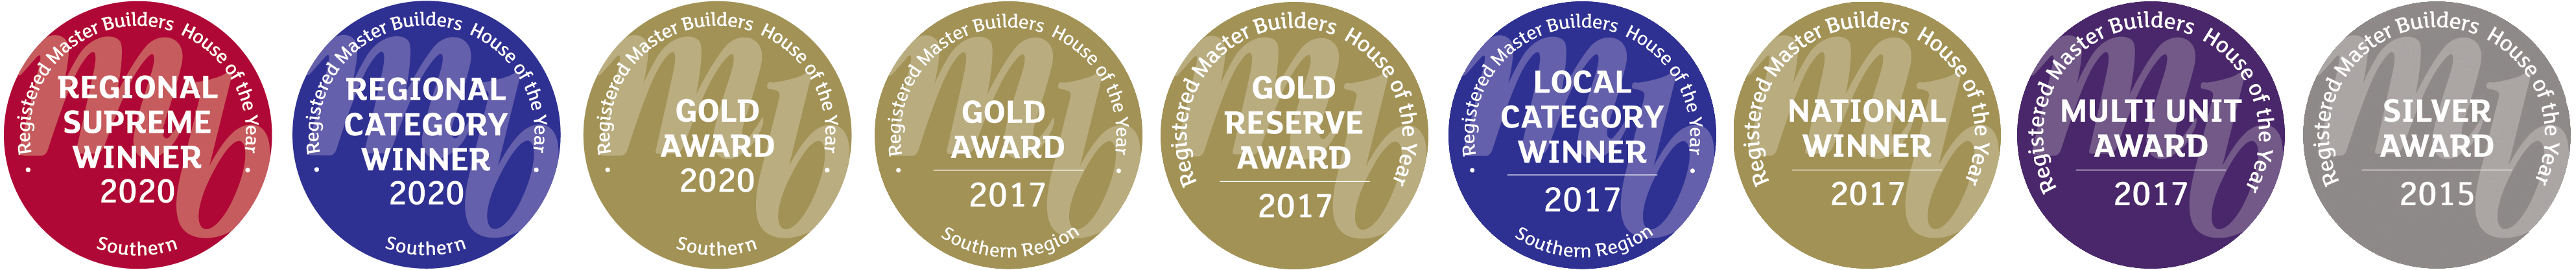 Master Builders Awards Bennie Builders